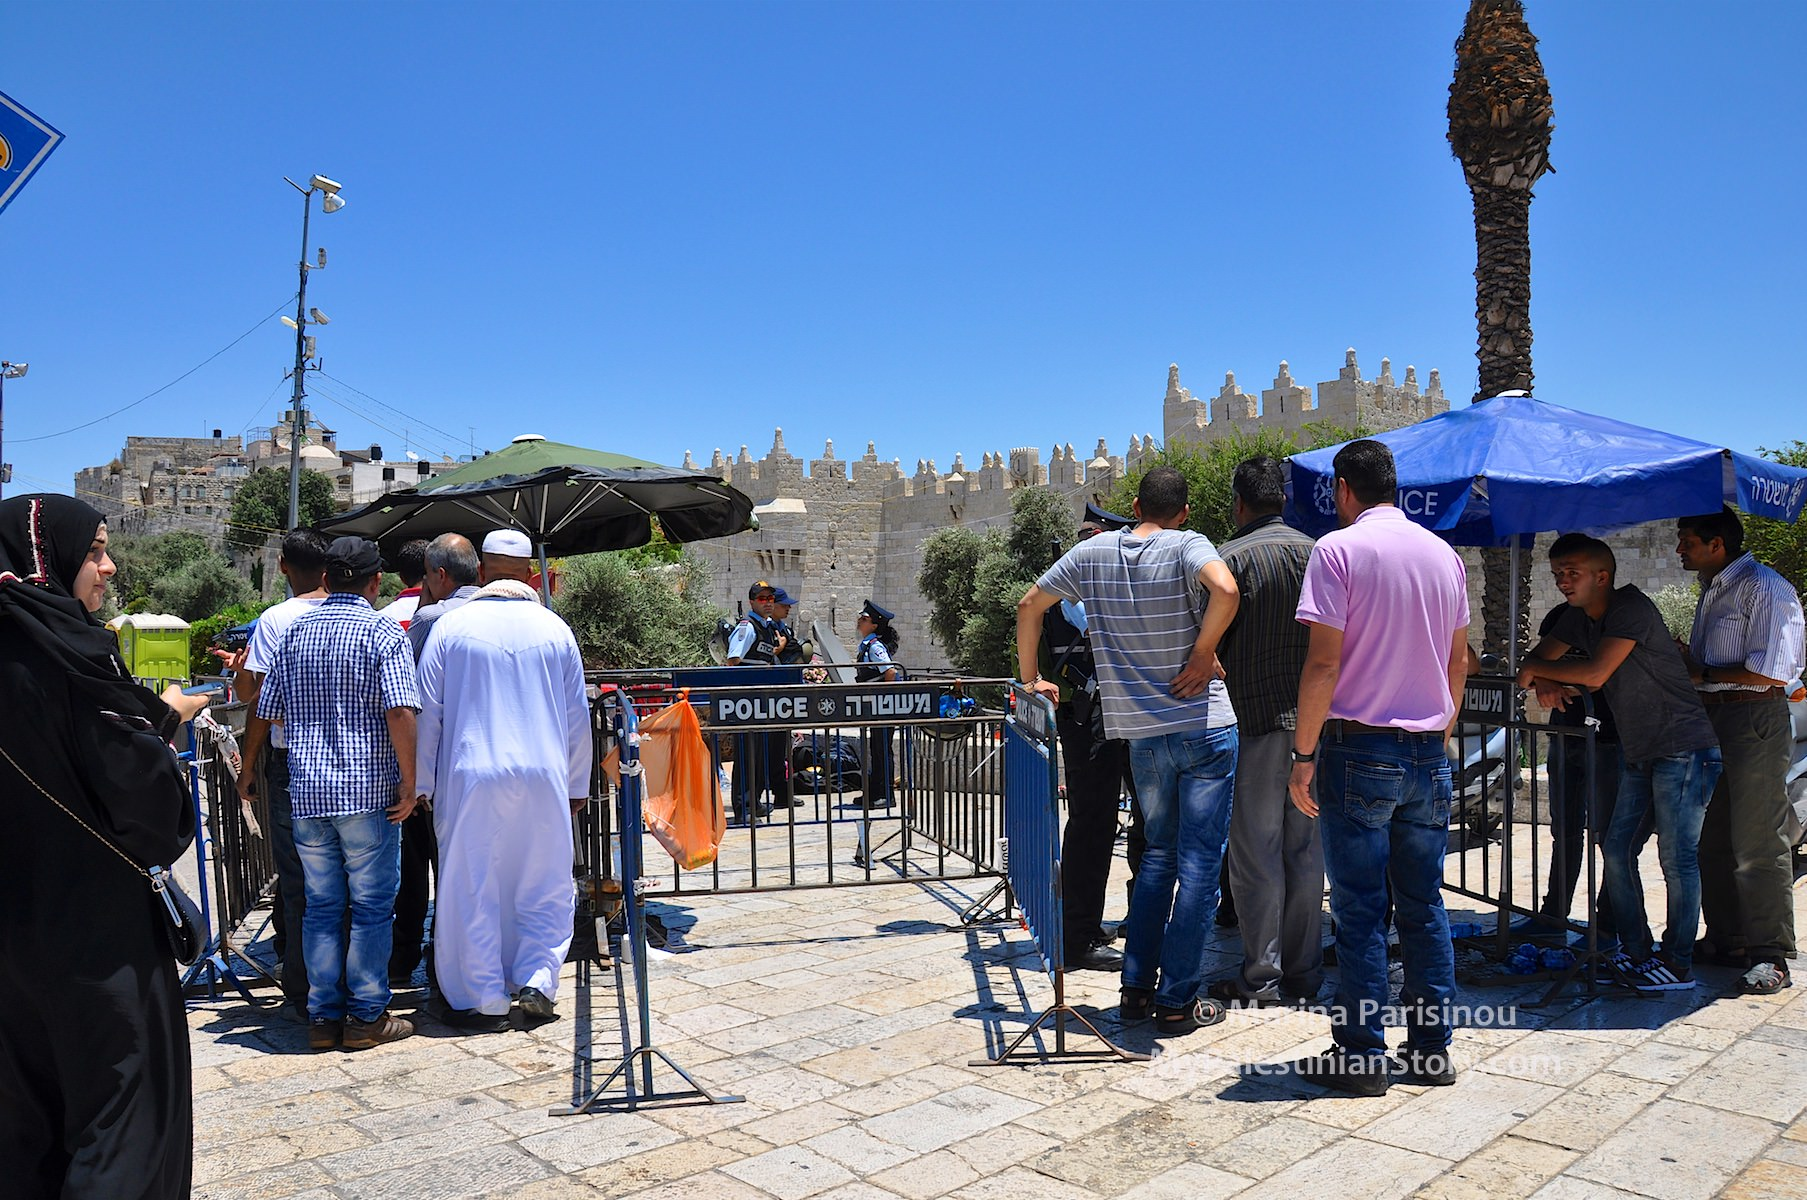 Checkpoint at Damascus Gate. Arab men up to 50 years old need not apply!